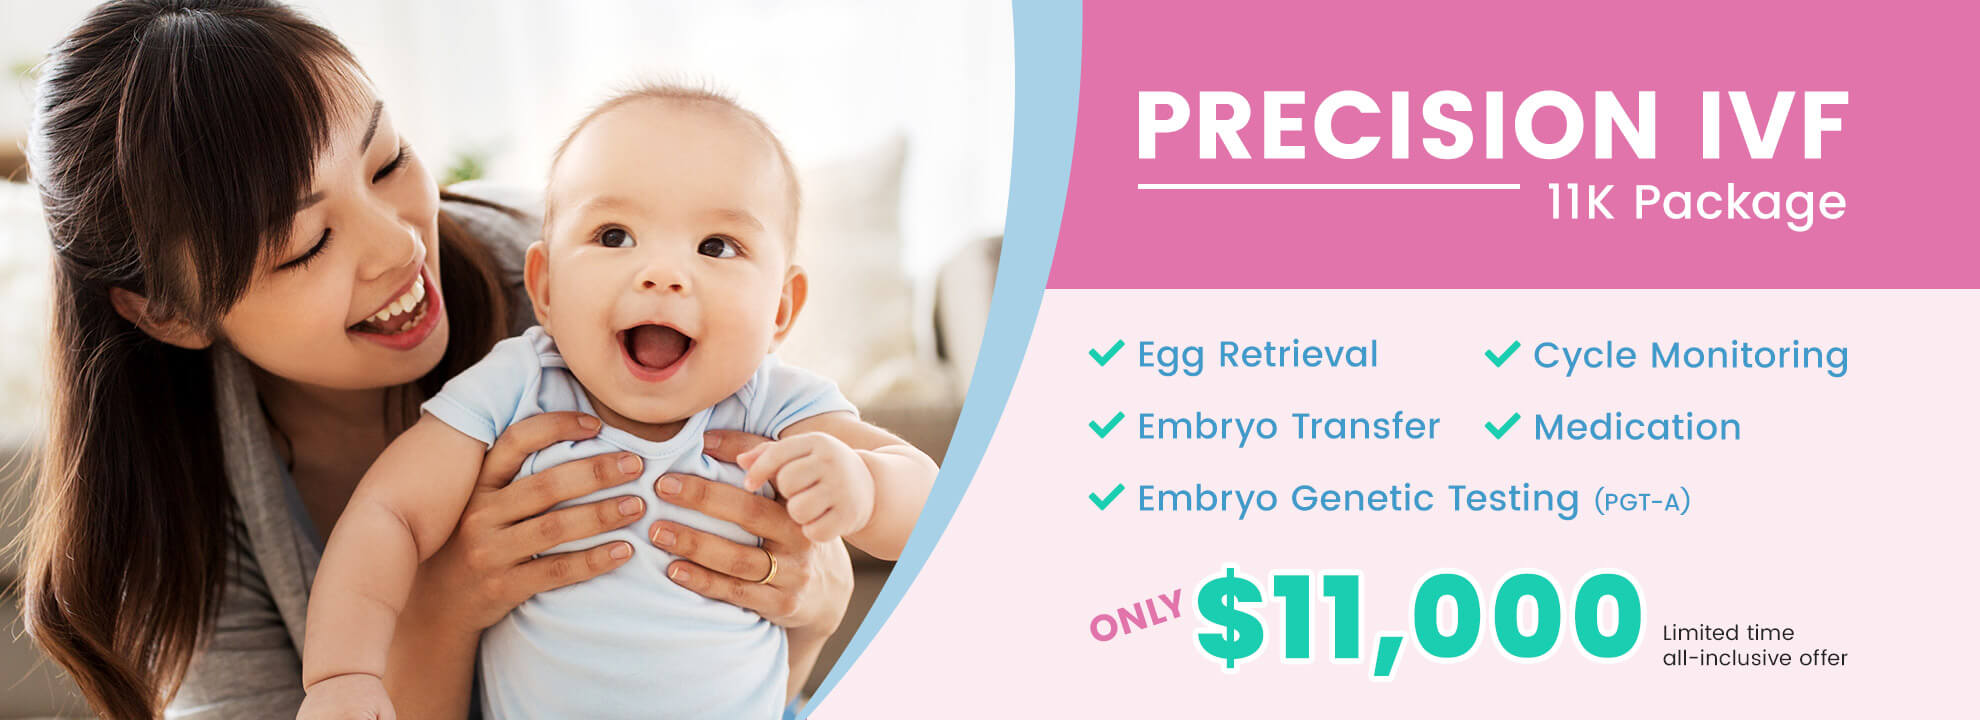 PRECISION IVF 11K Package